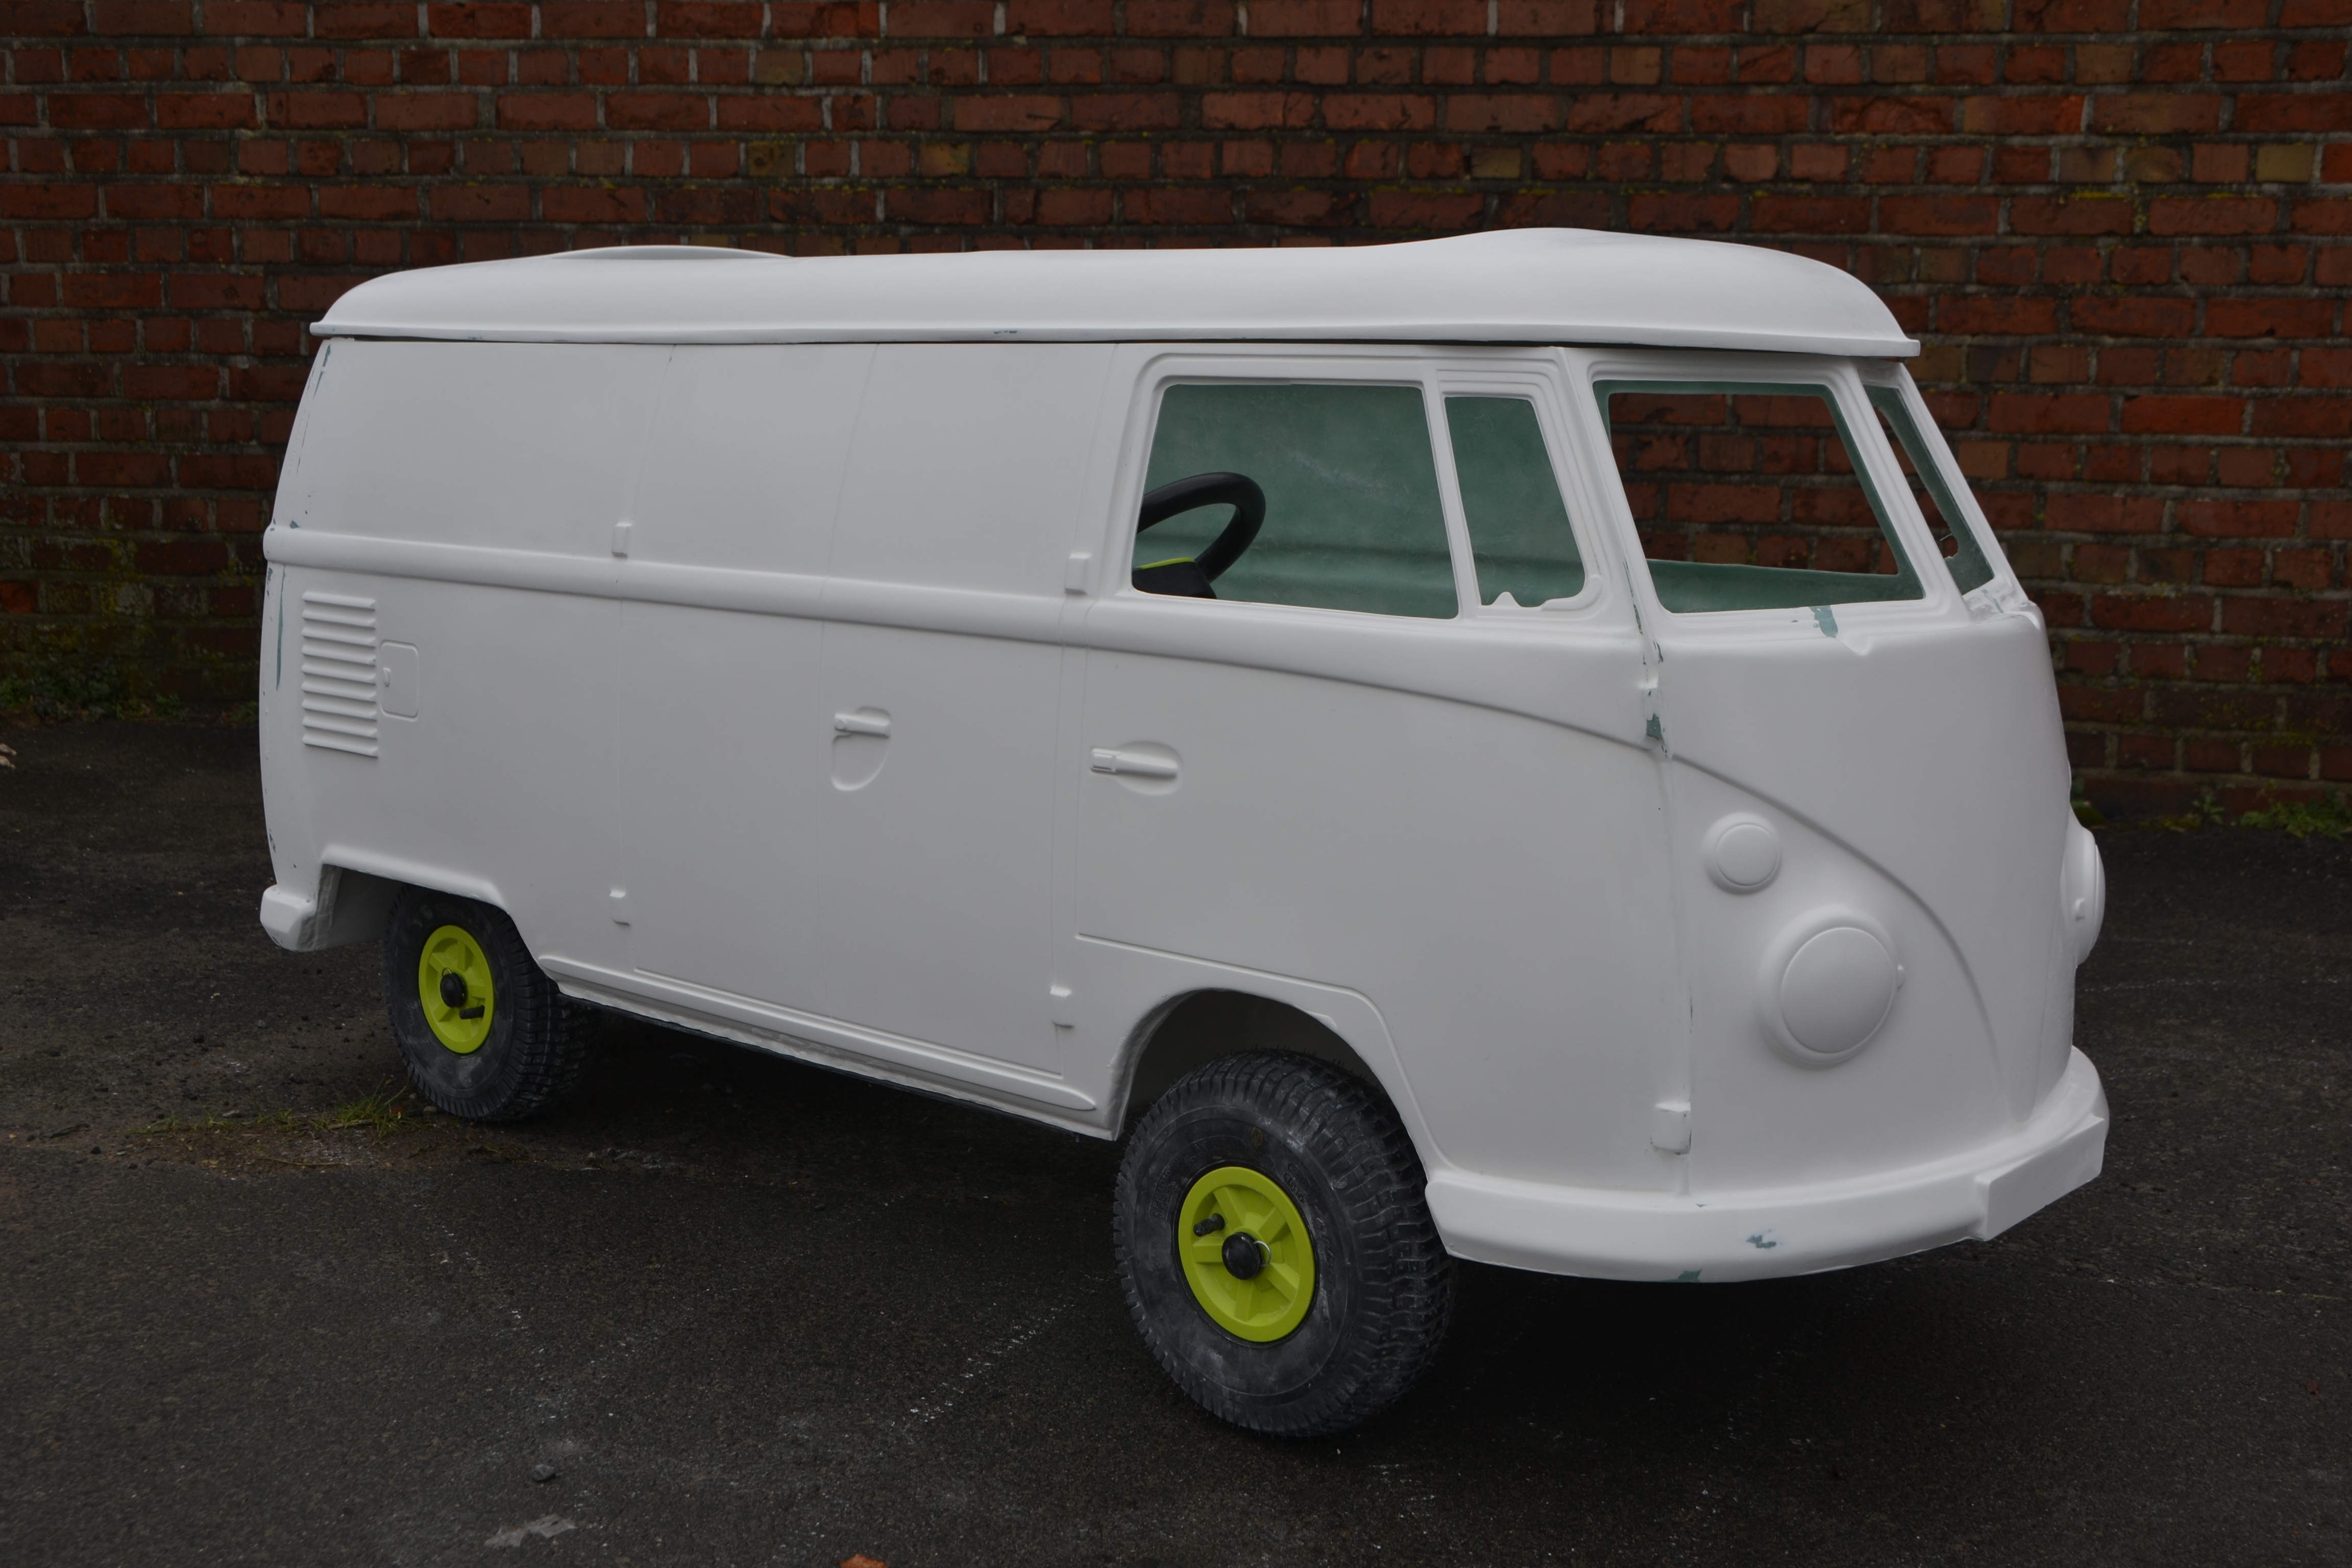 afbeelding van een polyester bus, spijlbus,  microbus, sambas, samba,  panel,panelvan, transporter, sambabus, schaalmodel, bus, busje, gocart body, panelbus, pedal car, gocart, bus voor gocart,tot rod,   bully, Samba  bully, pickup  bully,  pickup bully,  replica,  panelbus, tot rod, kit car, hotrod,  go cart,  custom, car, toy box